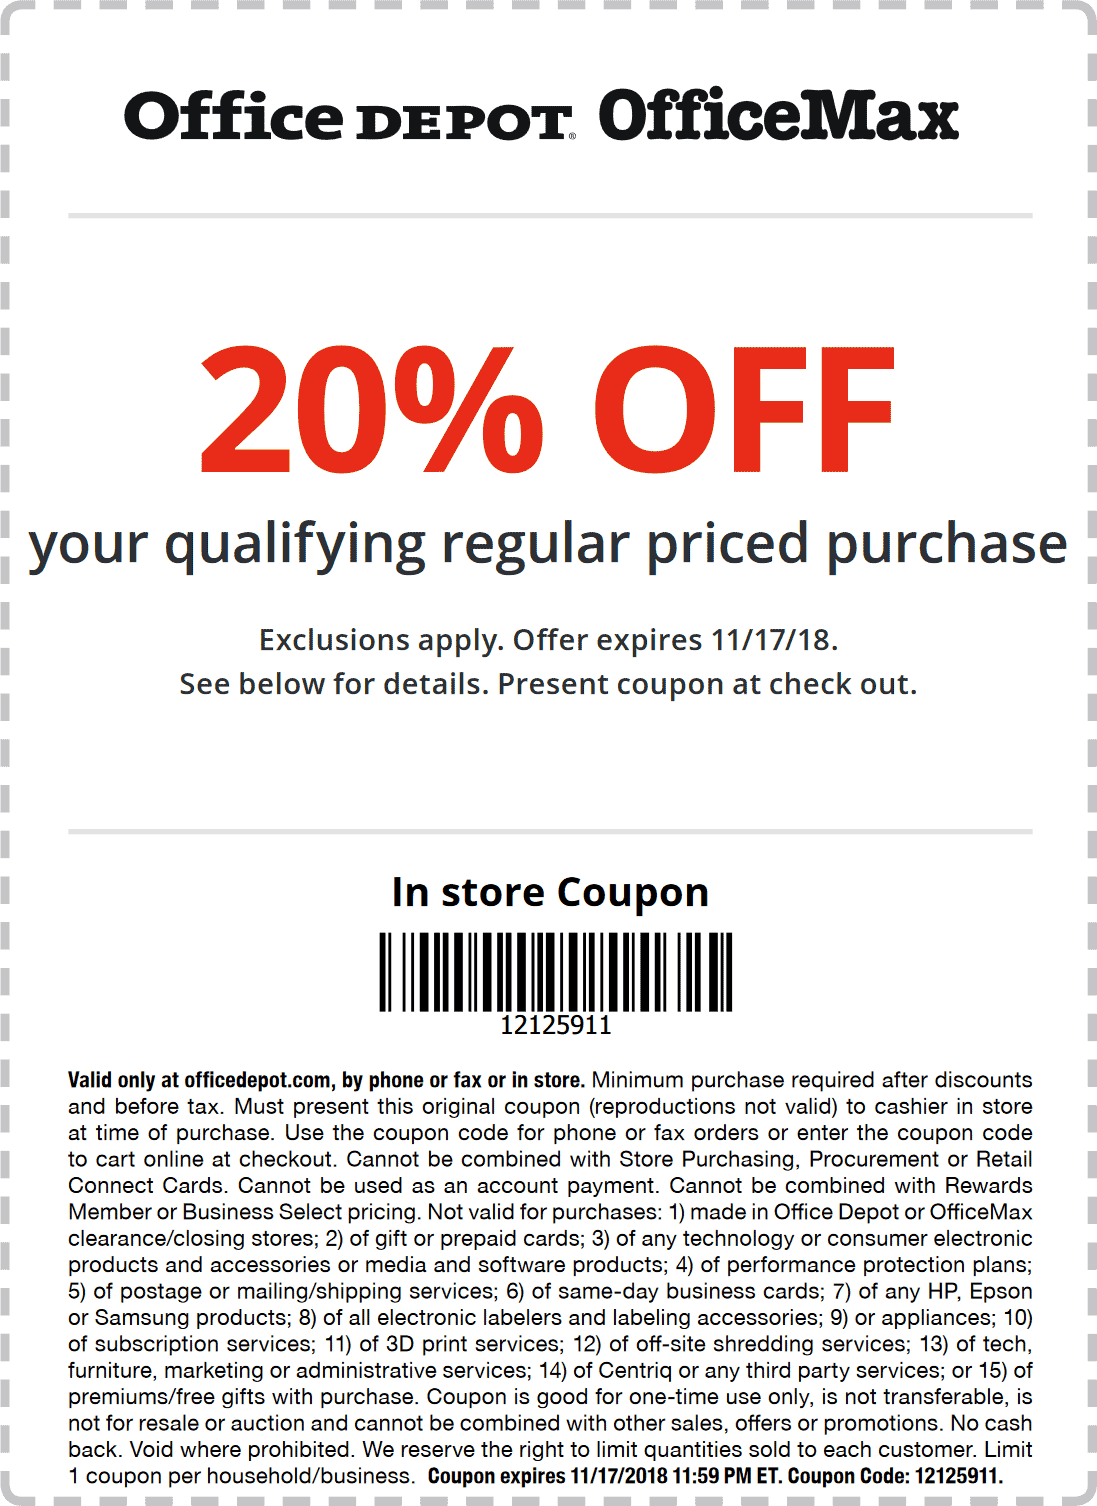 Office Depot Coupon August 2020 20% off at Office Depot & OfficeMax, or online via promo code 12125911